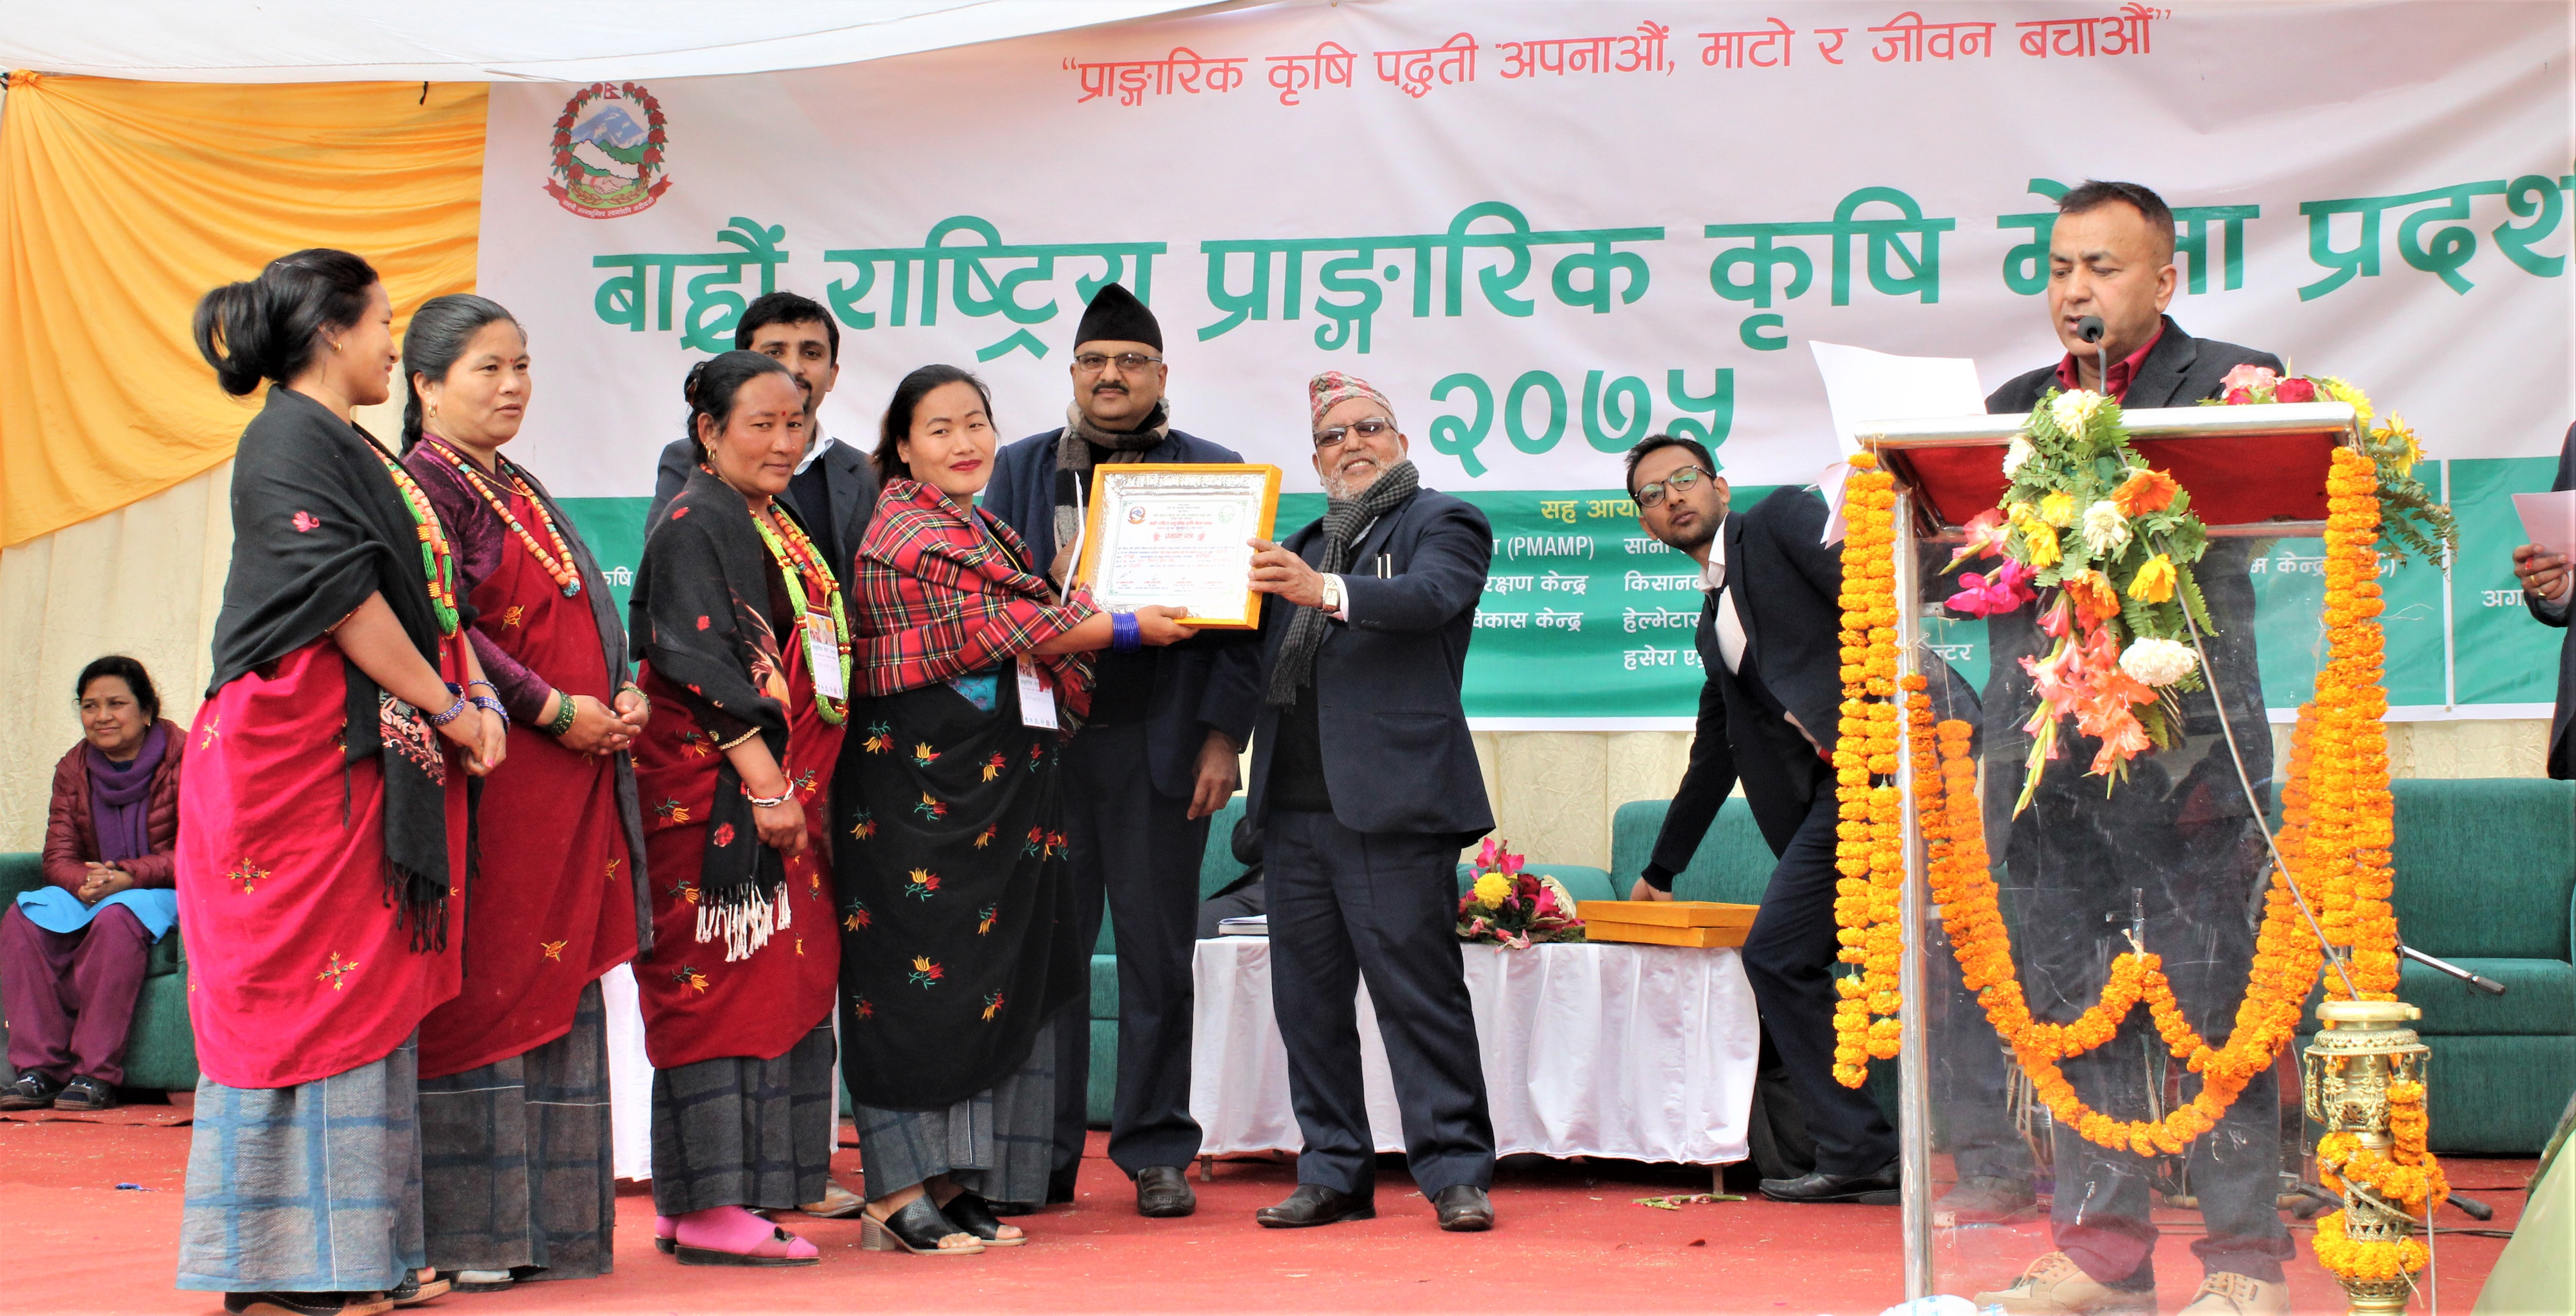 12th National Organic Agriculture Fair 2075: Promoting Organic Food